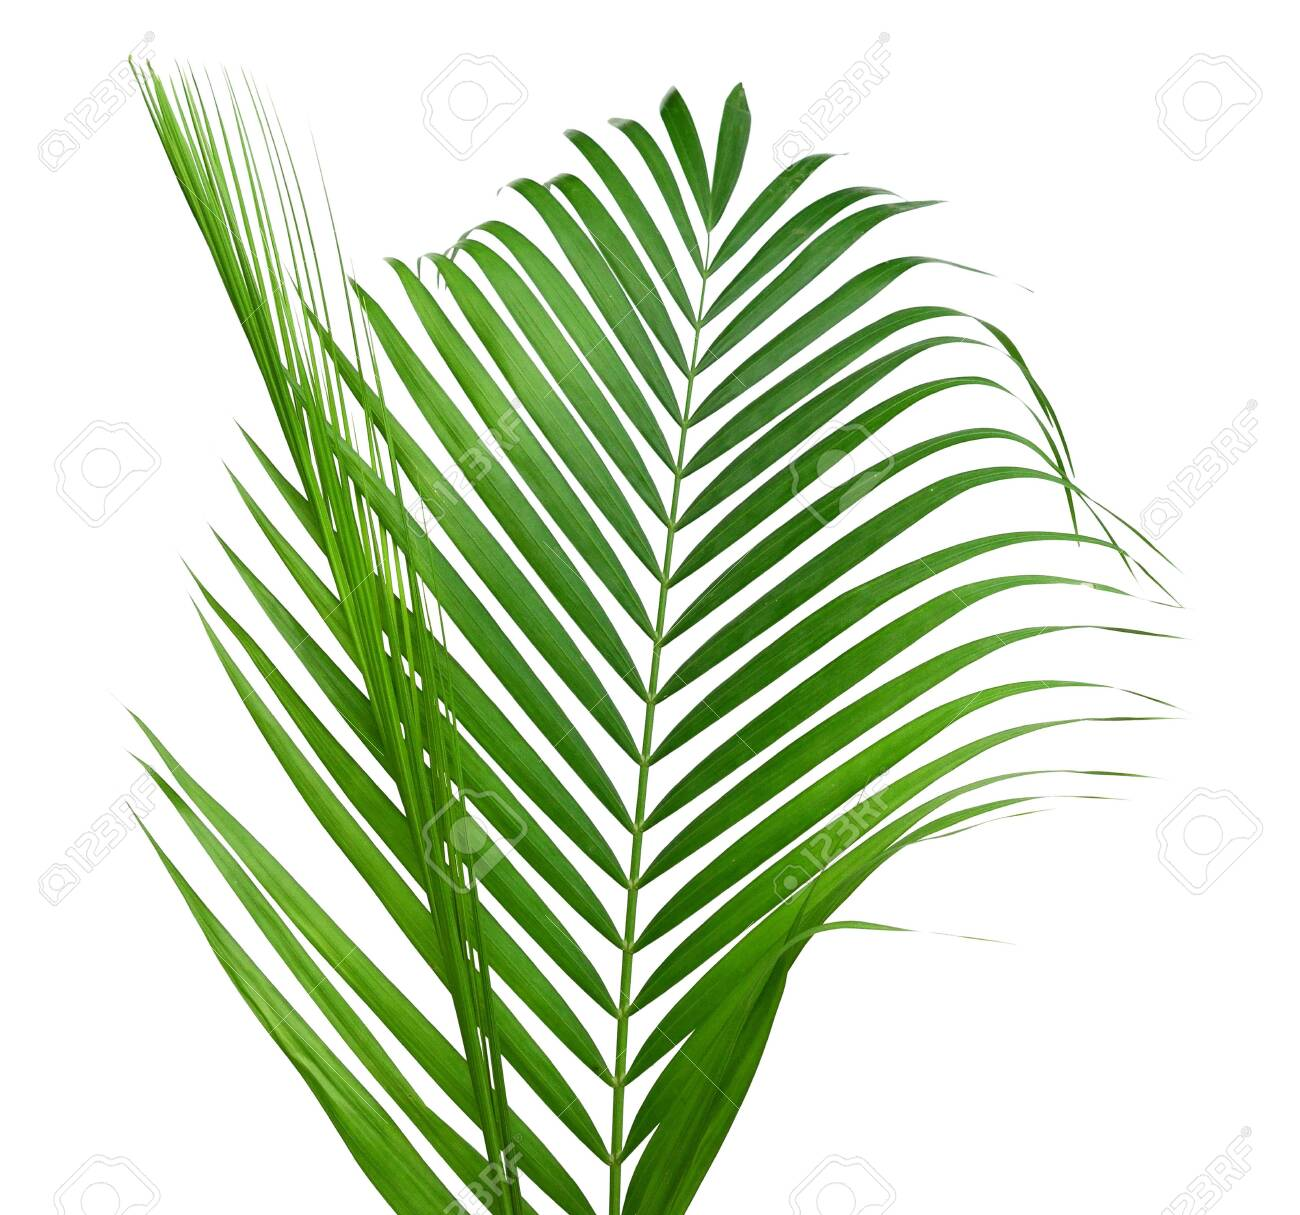 Yellow Palm Leaves Dypsis Lutescens Or Golden Cane Palm Areca Stock Photo Picture And Royalty Free Image Image 123468326